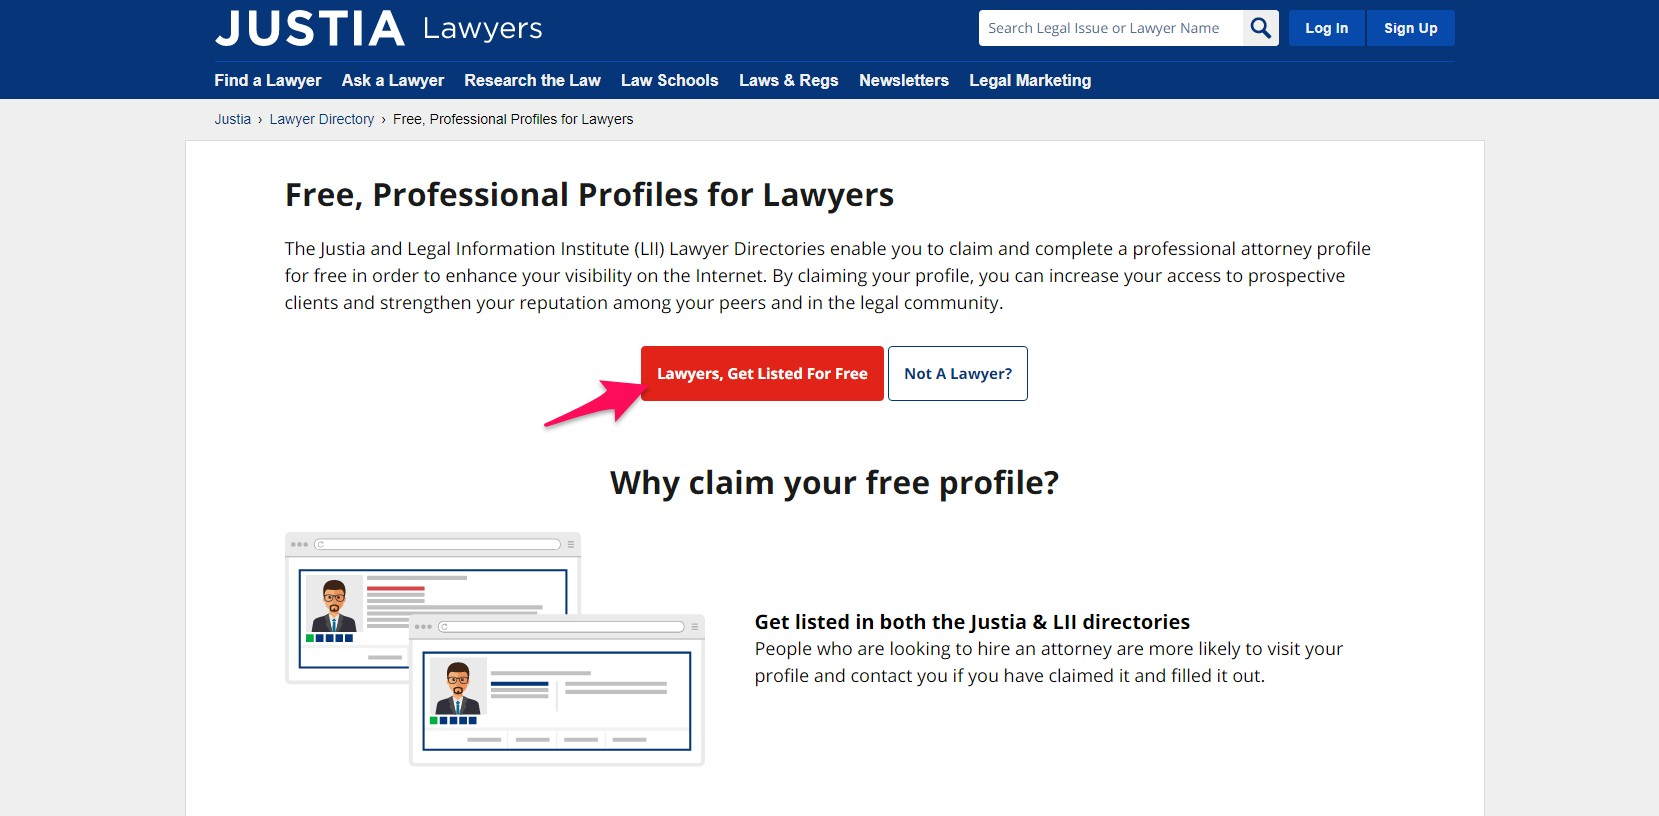 Lawyers, Get Listed For Free